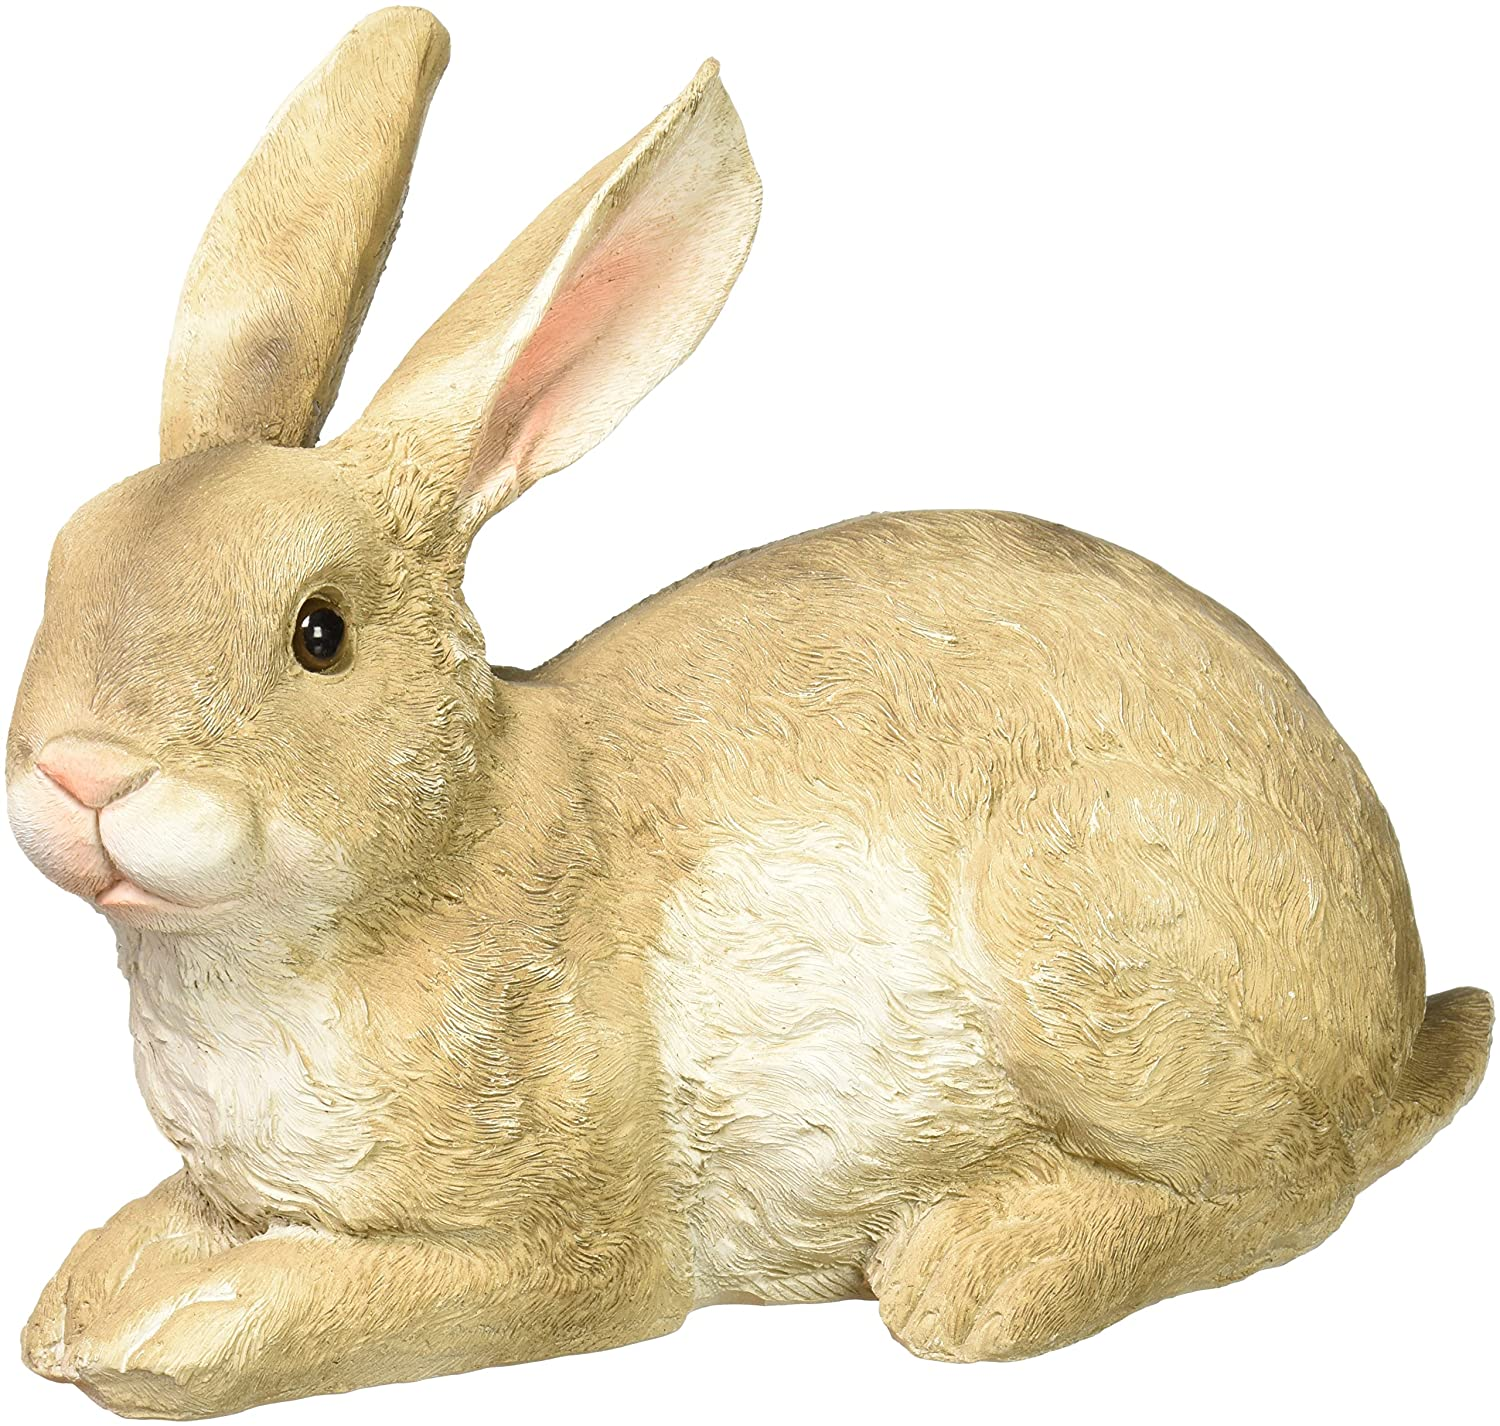 Design Toscano Bashful The Bunny Lying Down Rabbit Outdoor Garden Statue, 10 Inch, Polyresin,